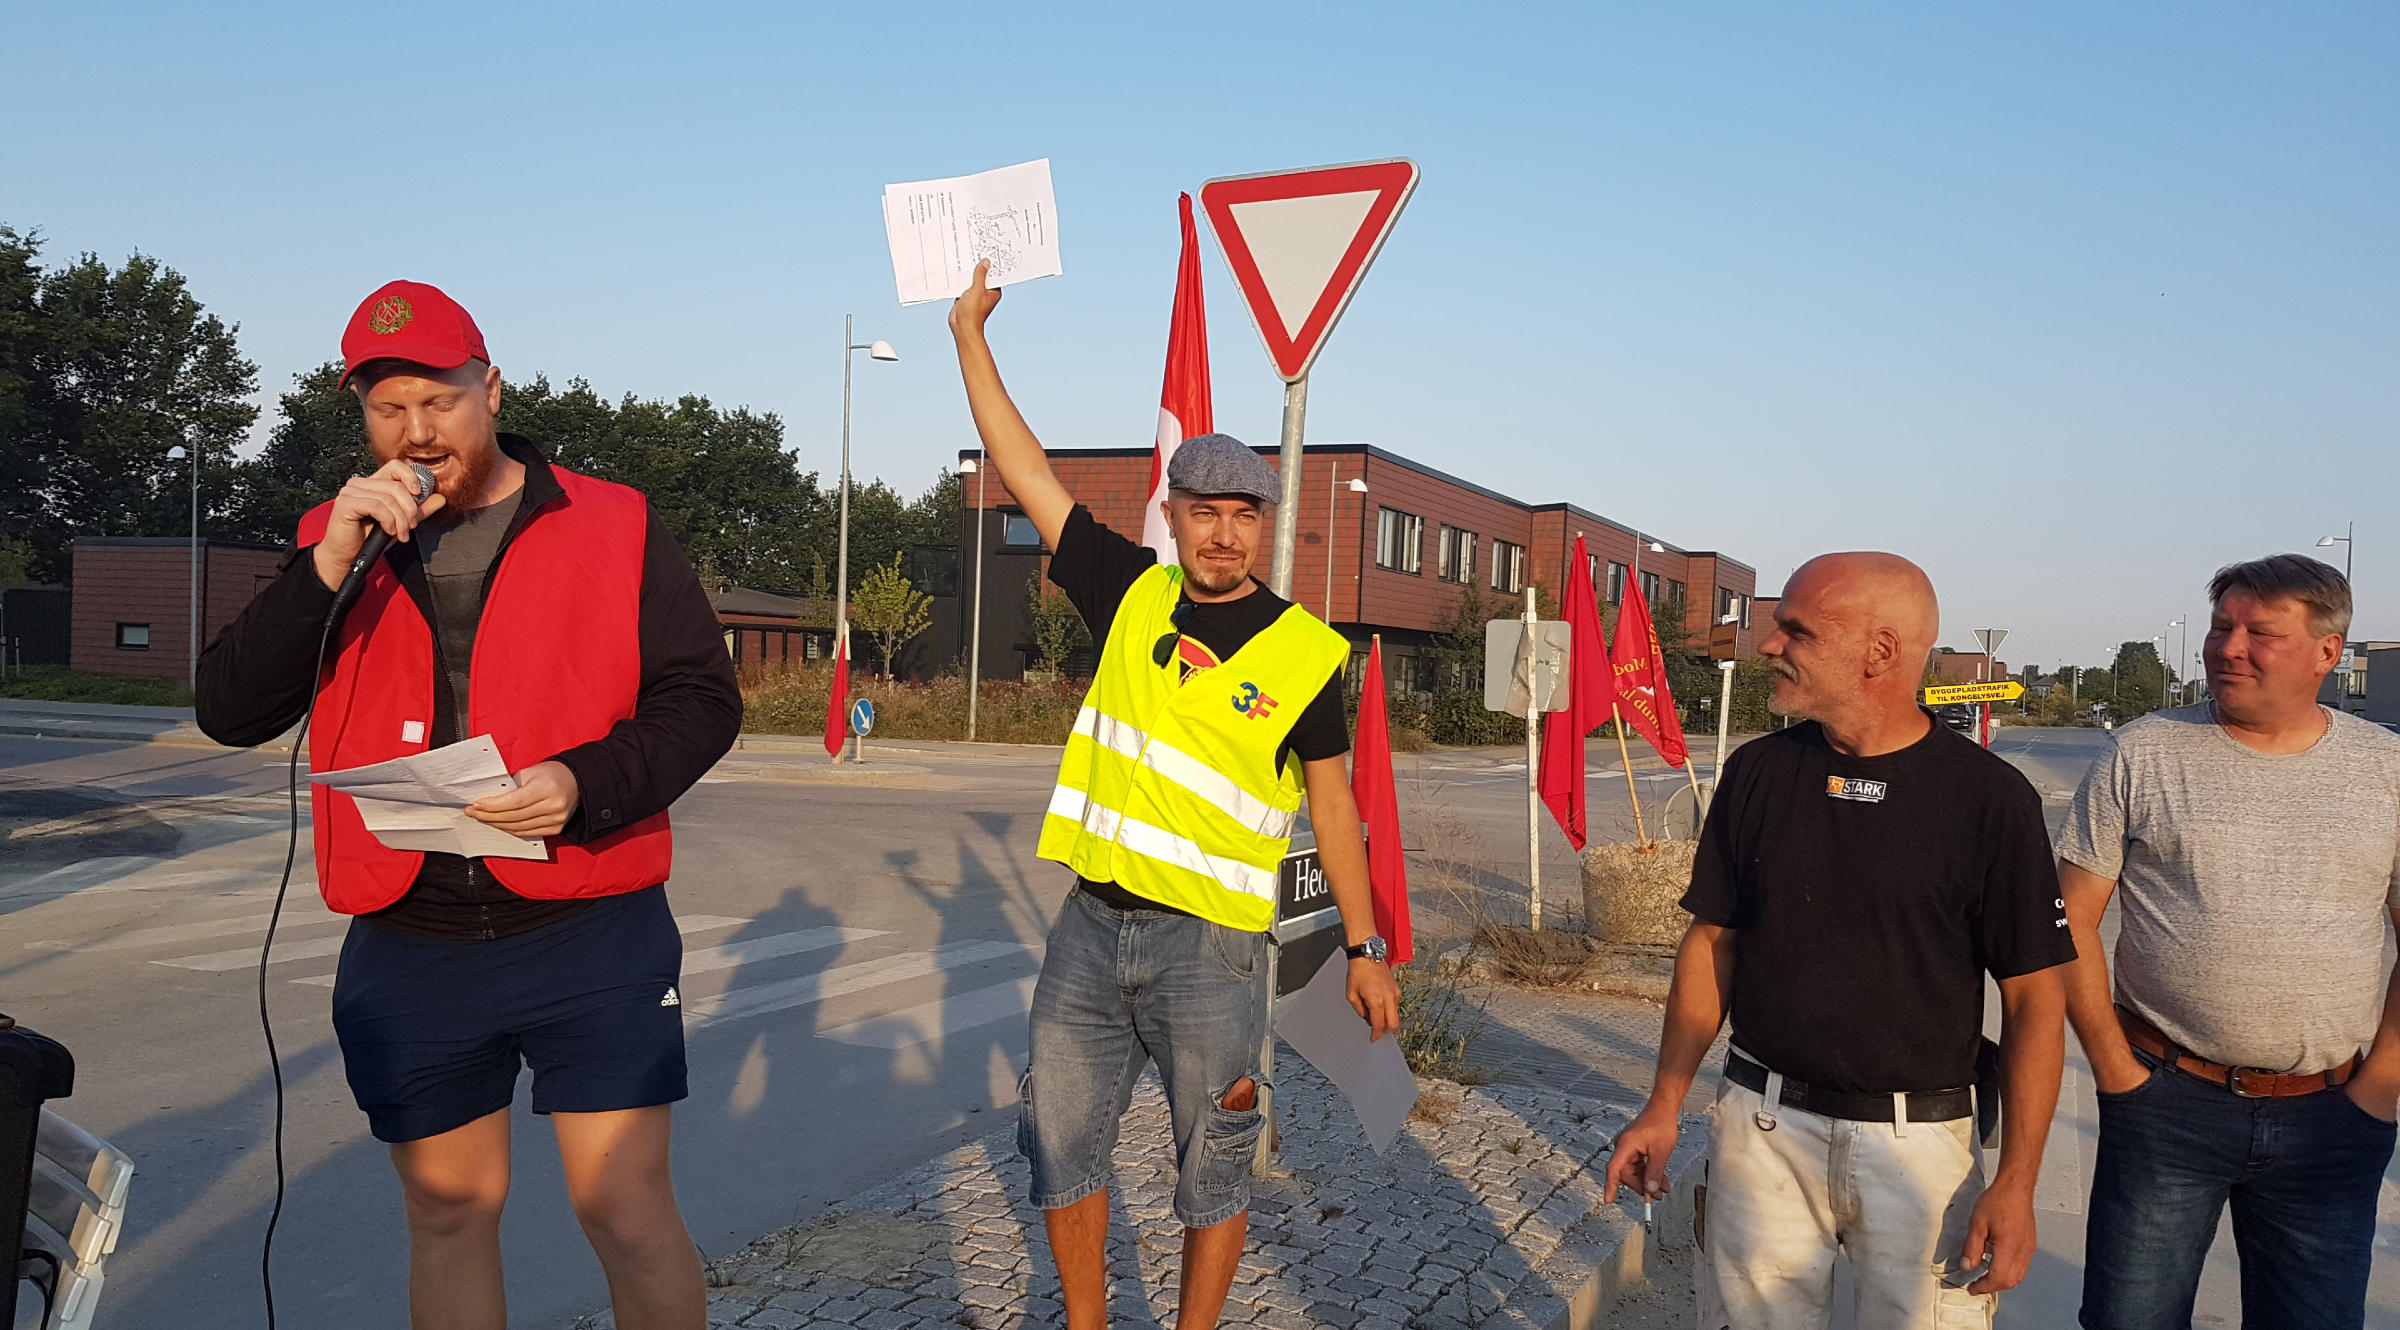 Victory at the building site in Hedehusene